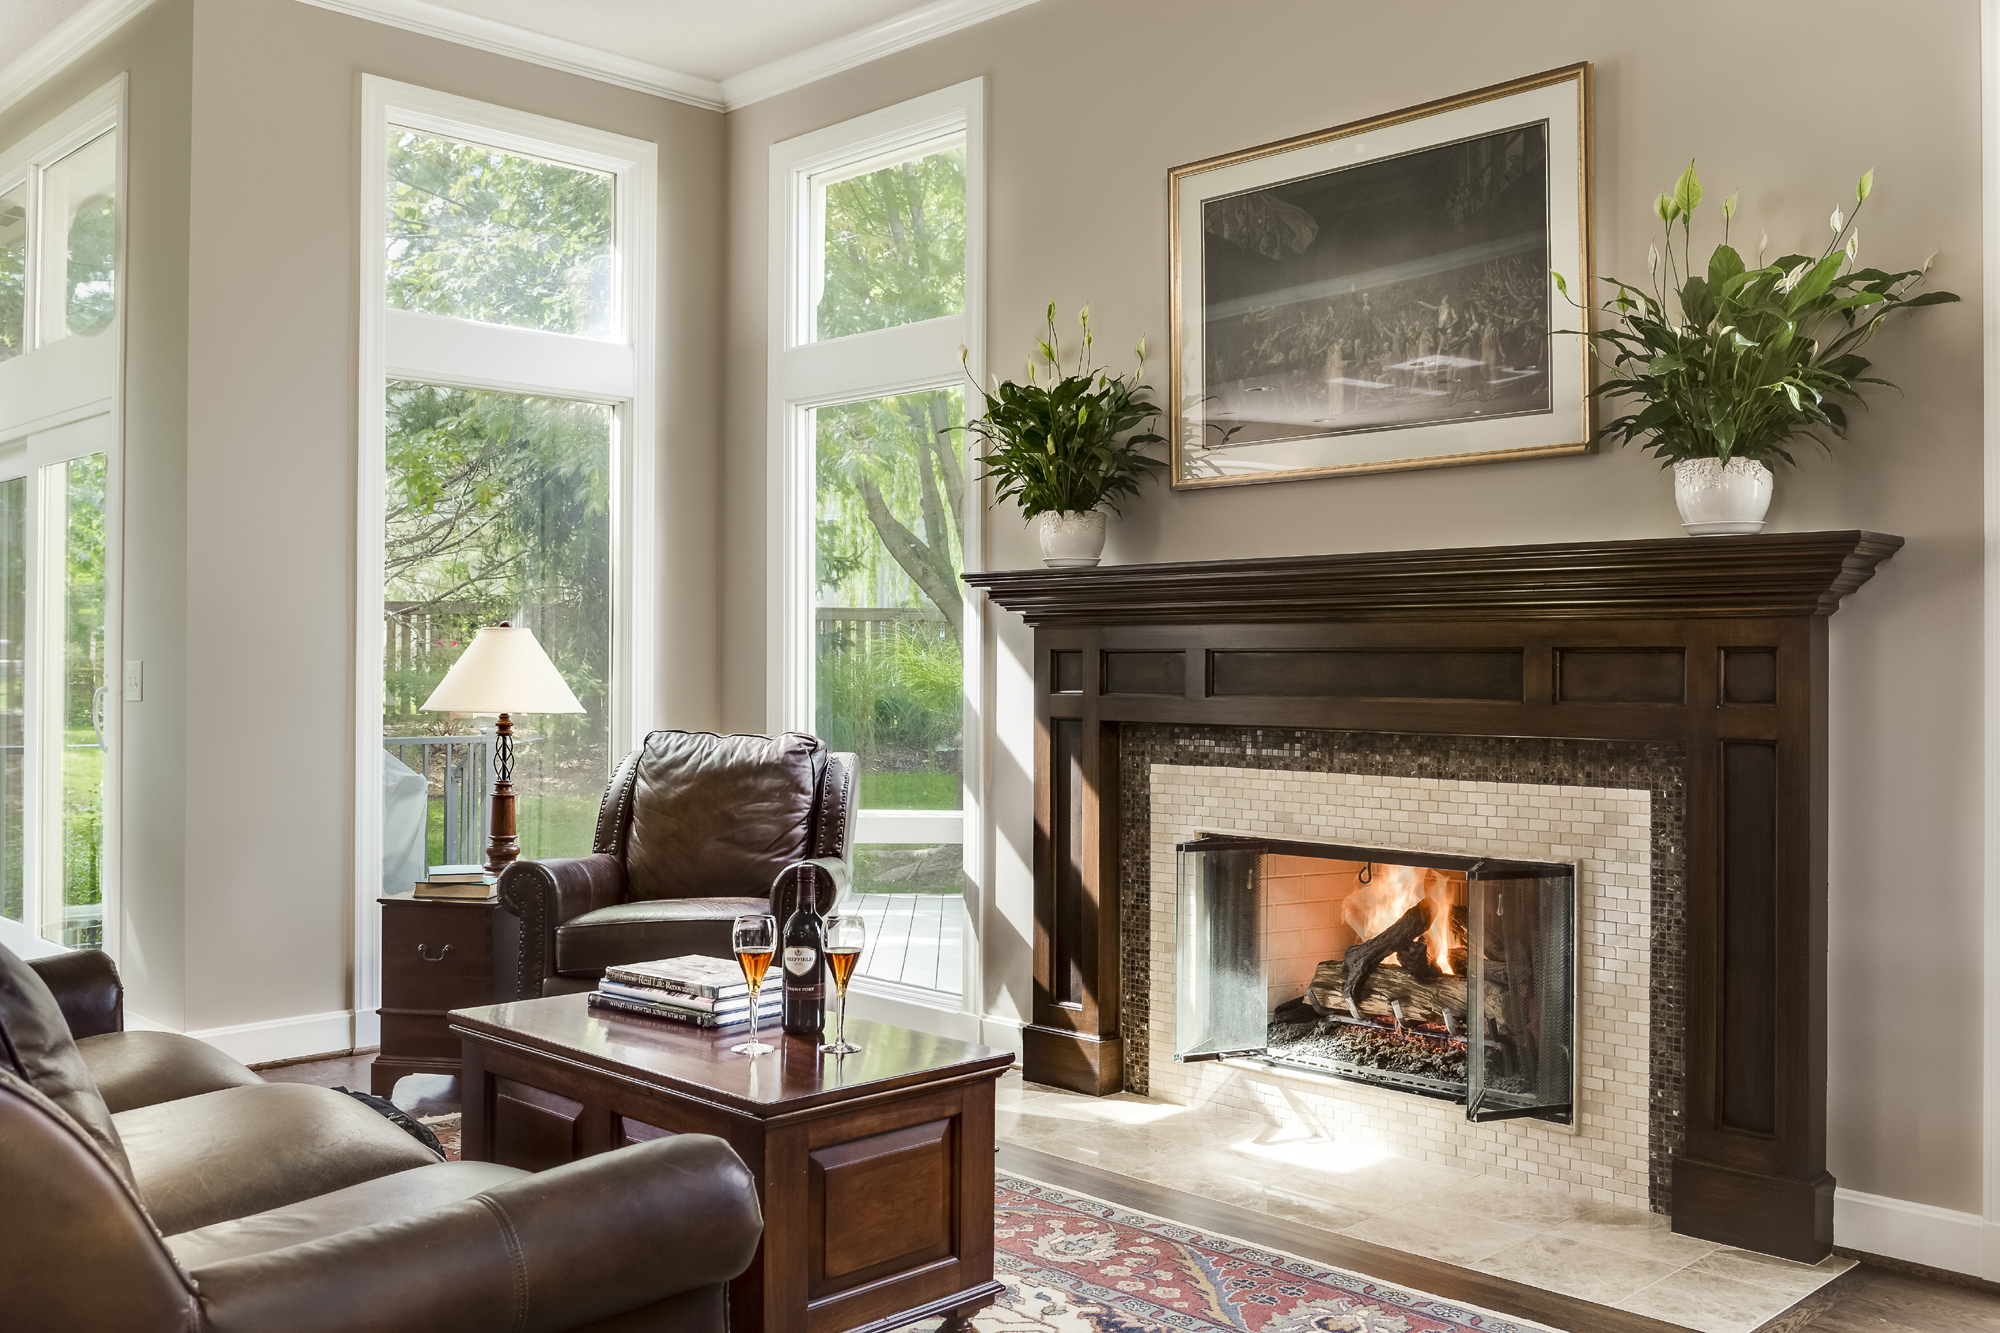 Fireplace Before and After Kansas City Interior Designer